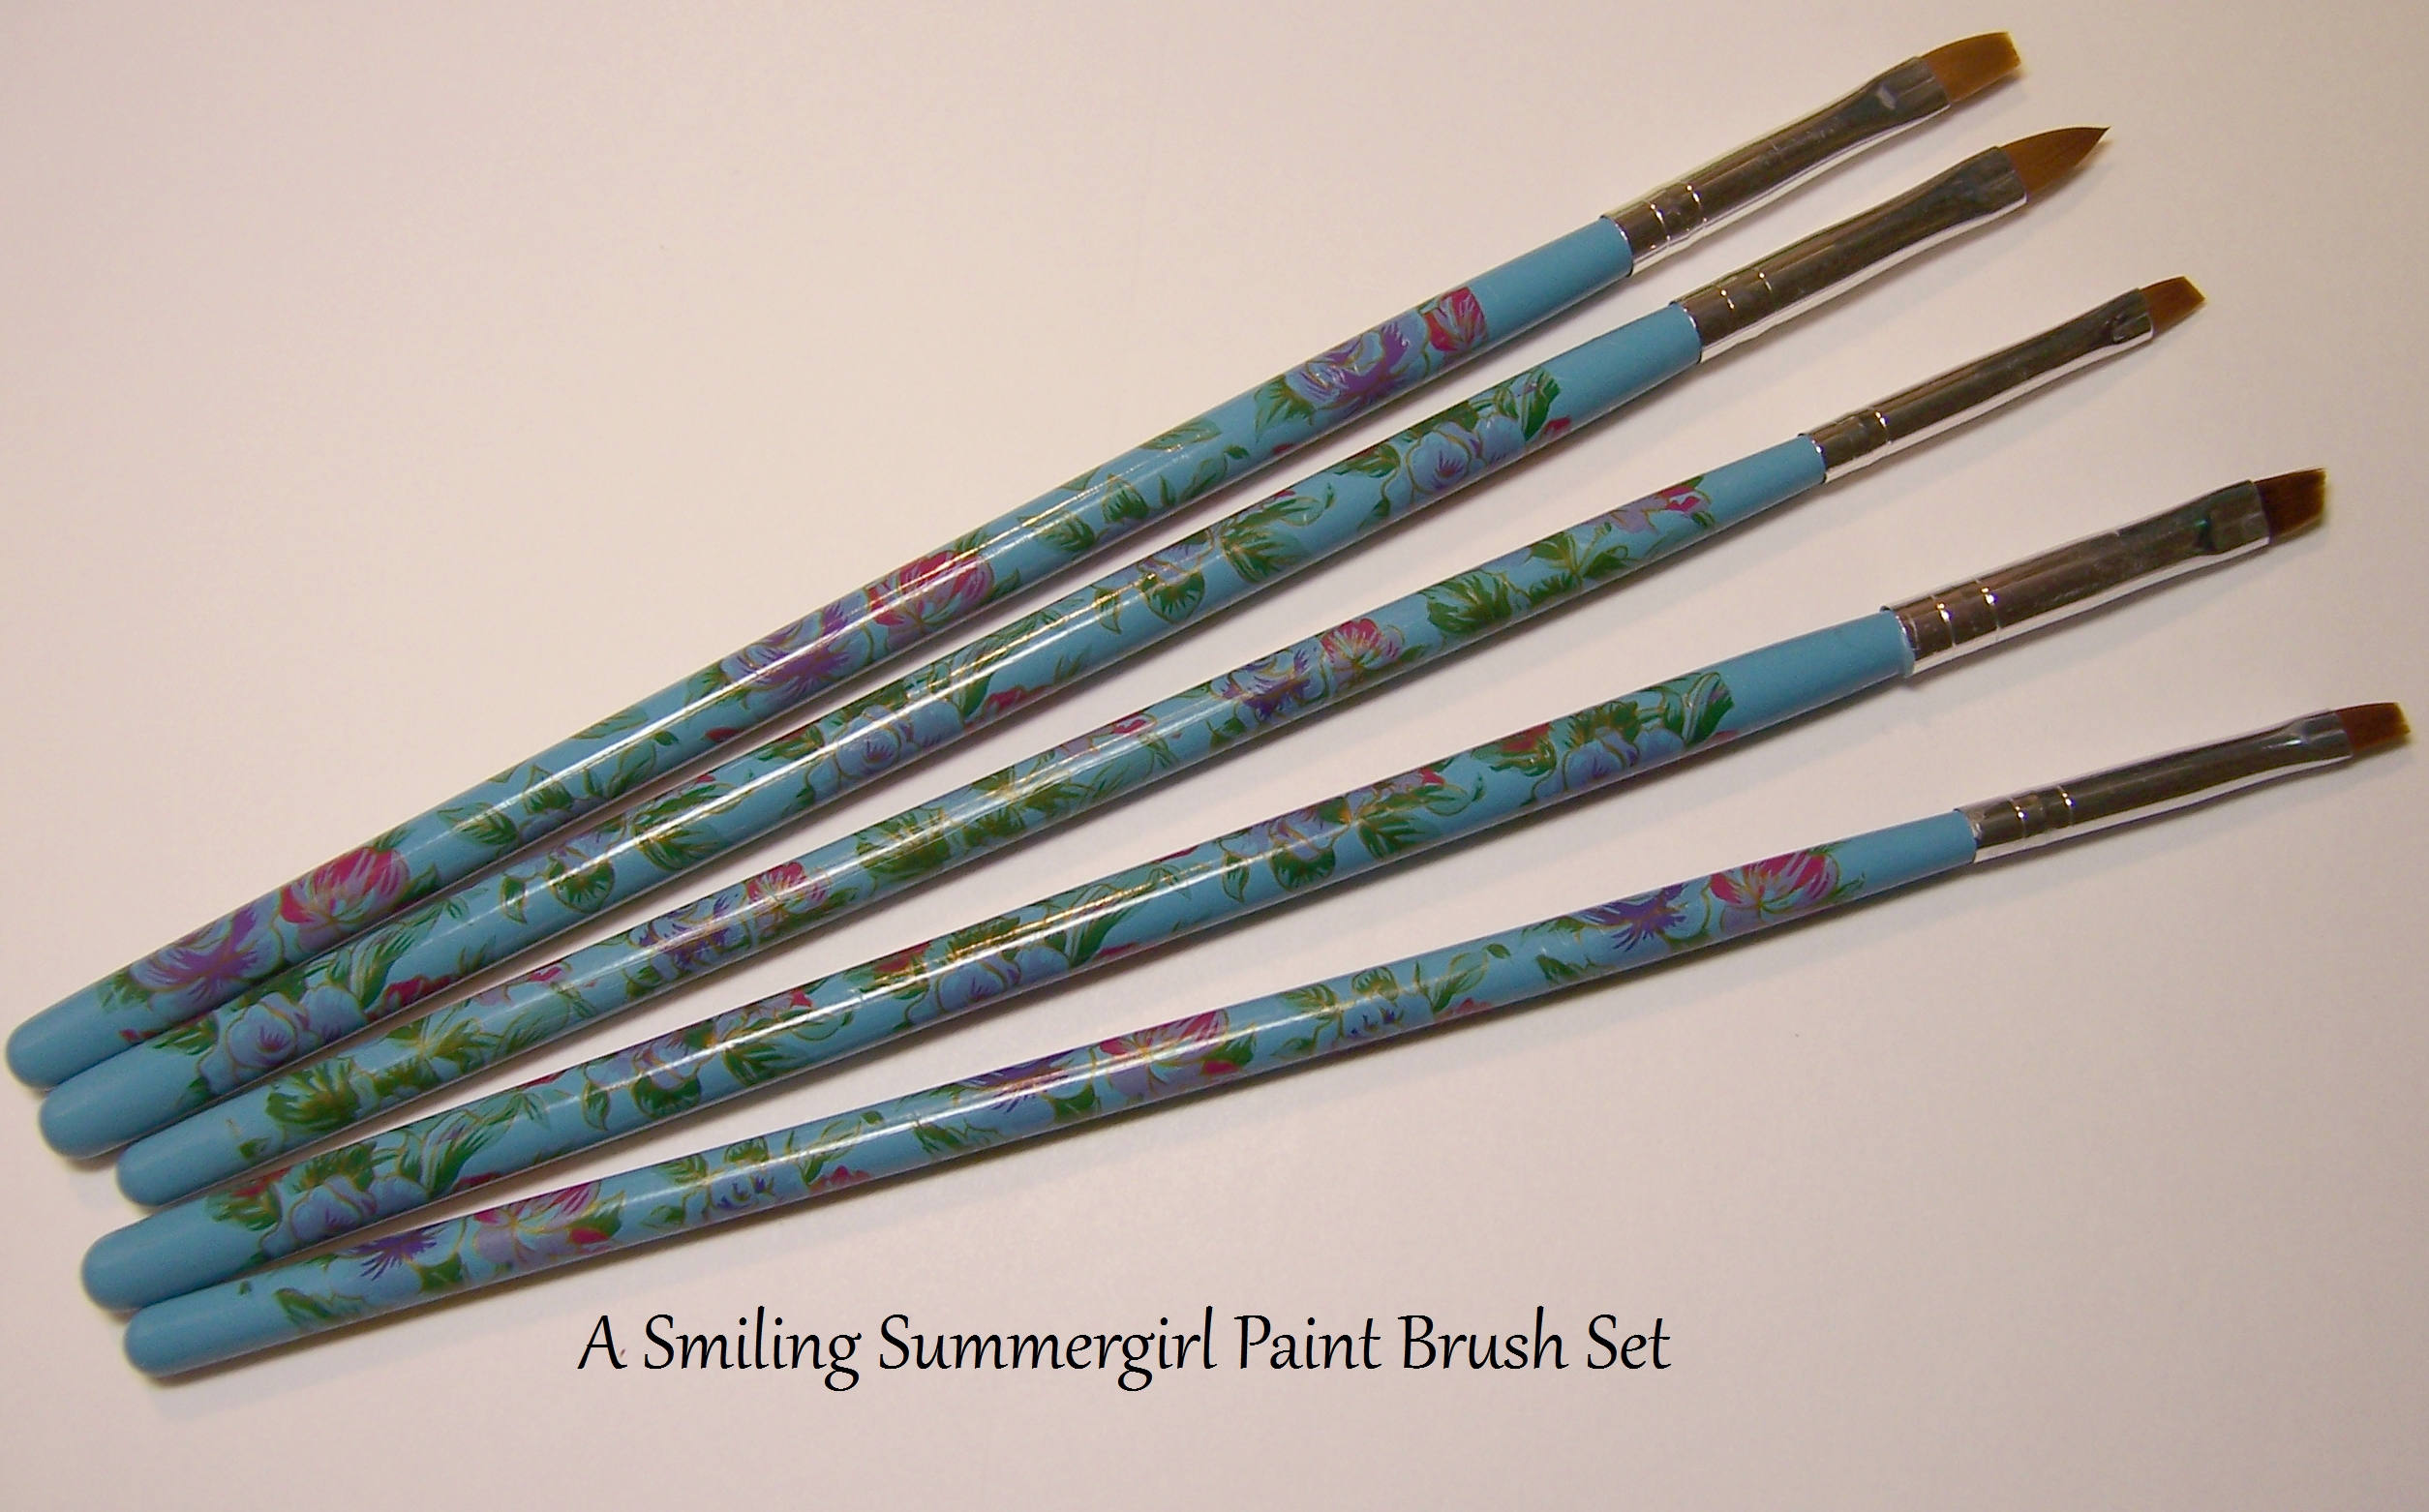 5 Small Detail Paint Brushes for Painting, Nail Art, Paper Crafts ...